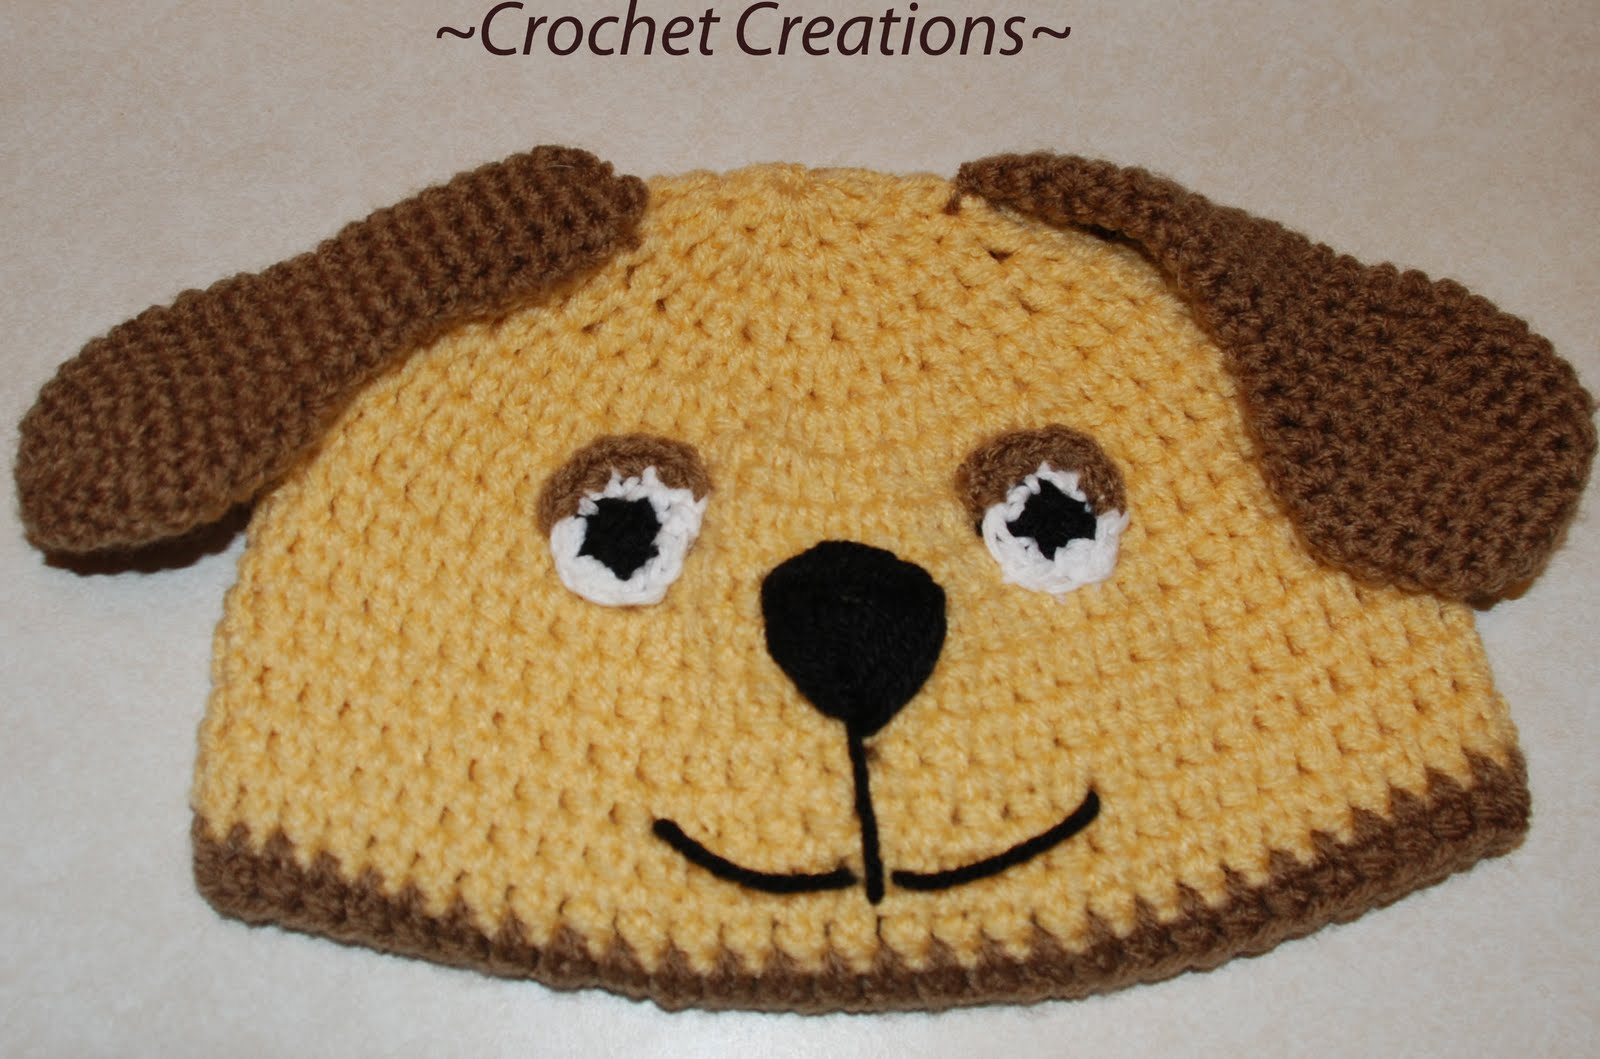 Amys Crochet Creative Creations: Nov 15, 2011